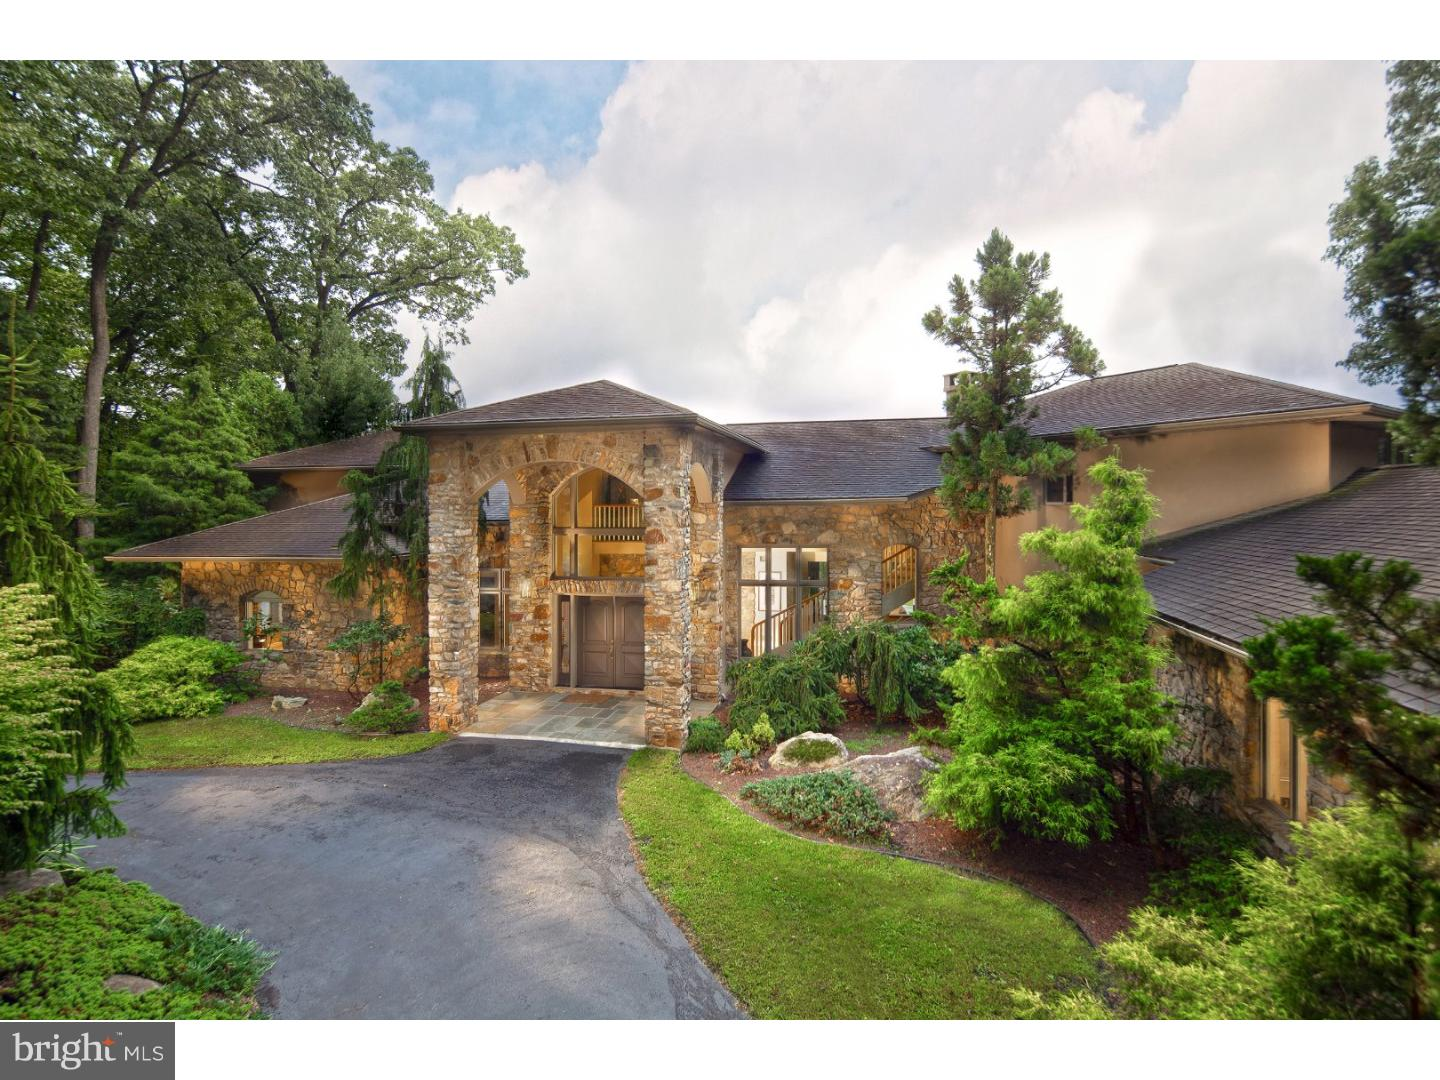 2080 SPRINGTOWN HILL ROAD, LOWER SAUCON TWP, PA 18055